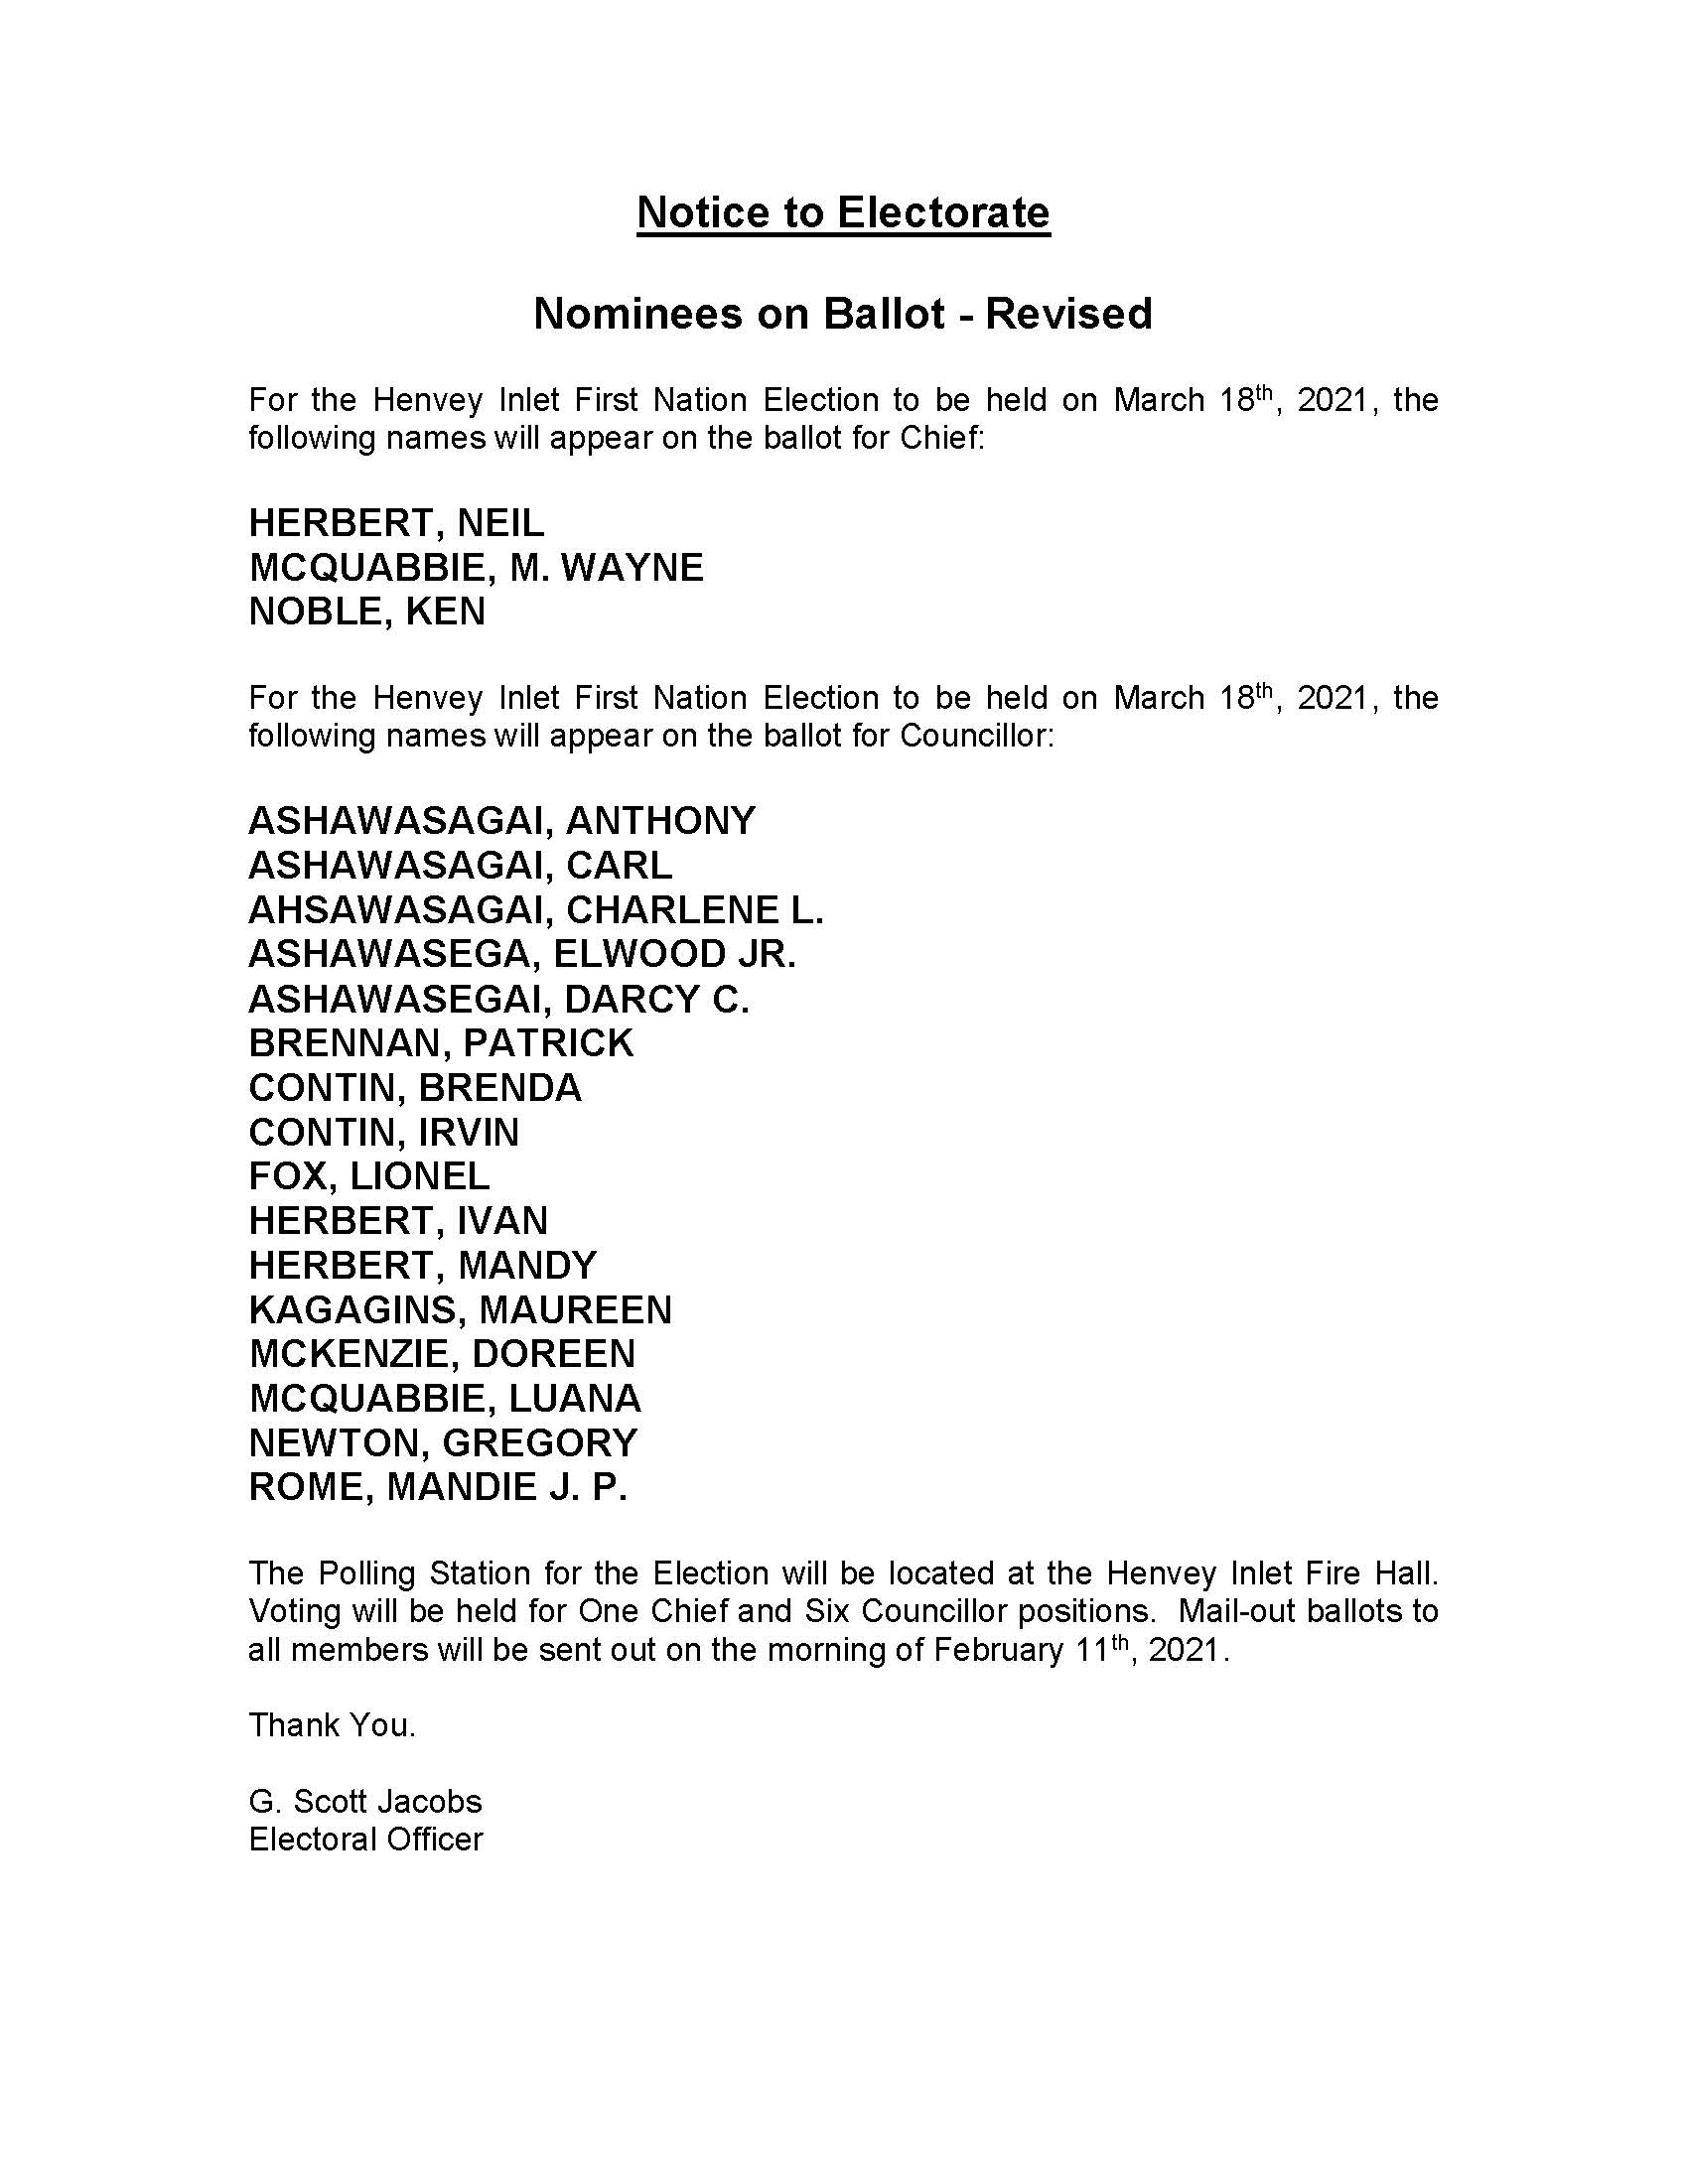 Posted Nominee Notice